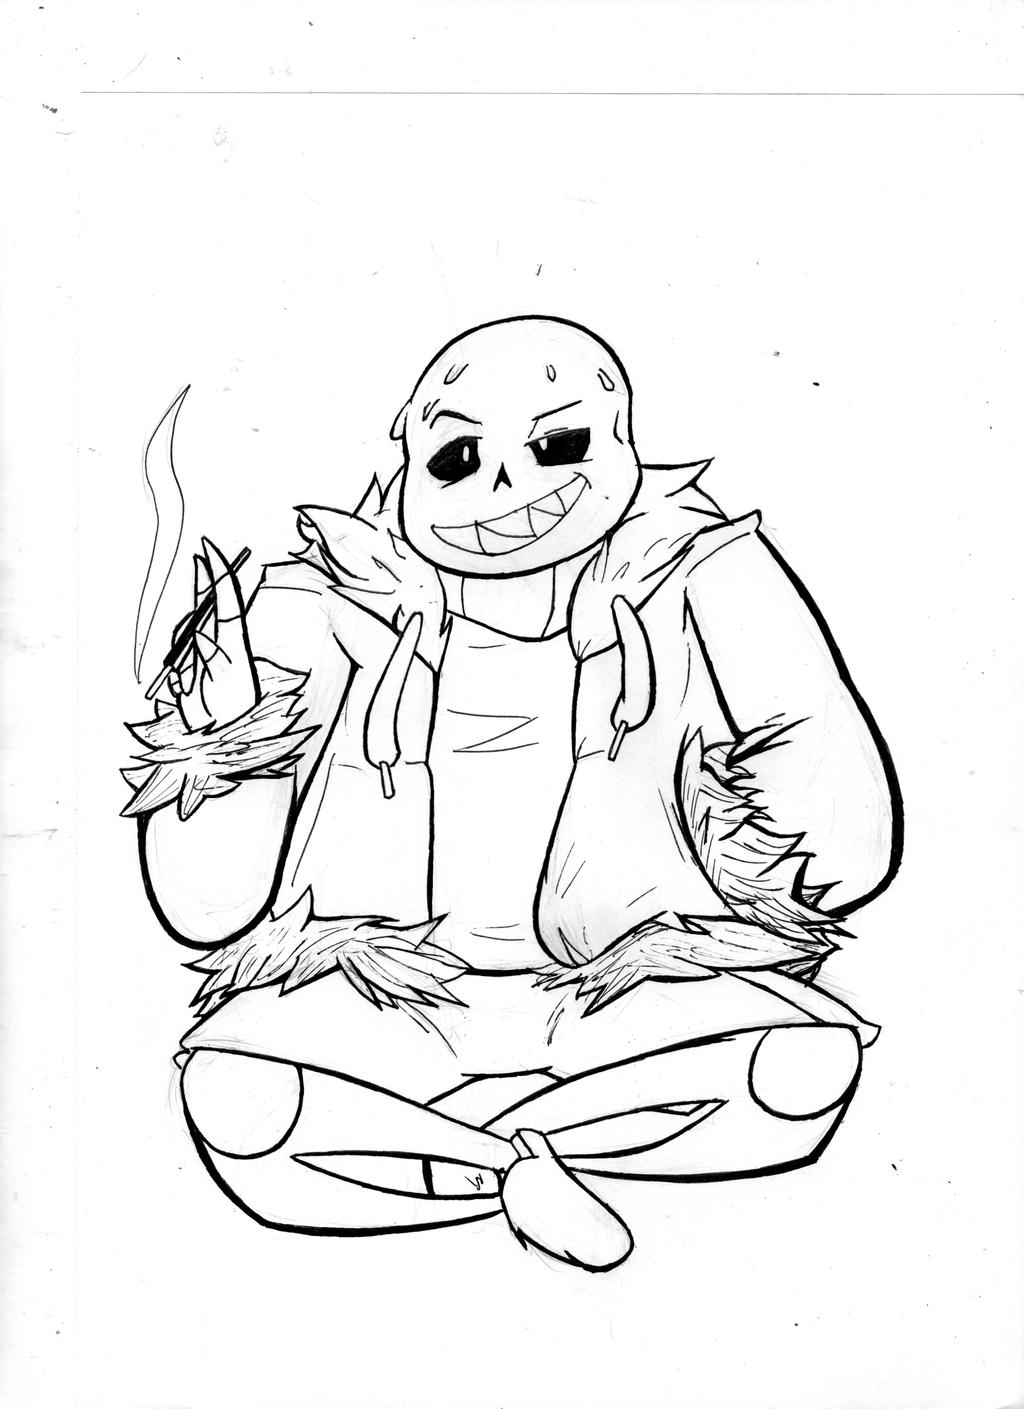 Underfell sans by asmallone on deviantart for Sans coloring page